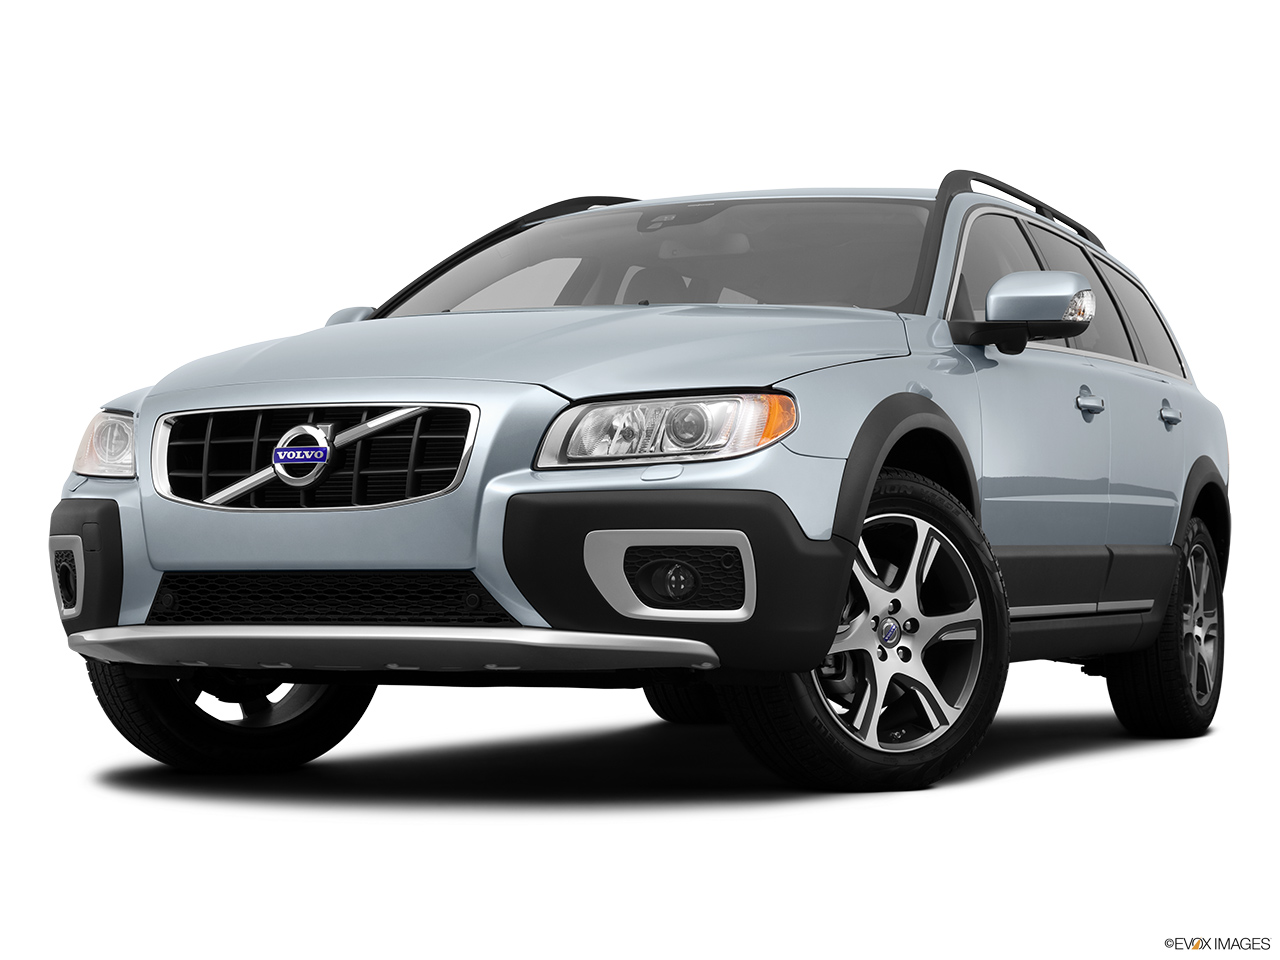 2013 Volvo XC70 T6 AWD Platinum Front angle view, low wide perspective.